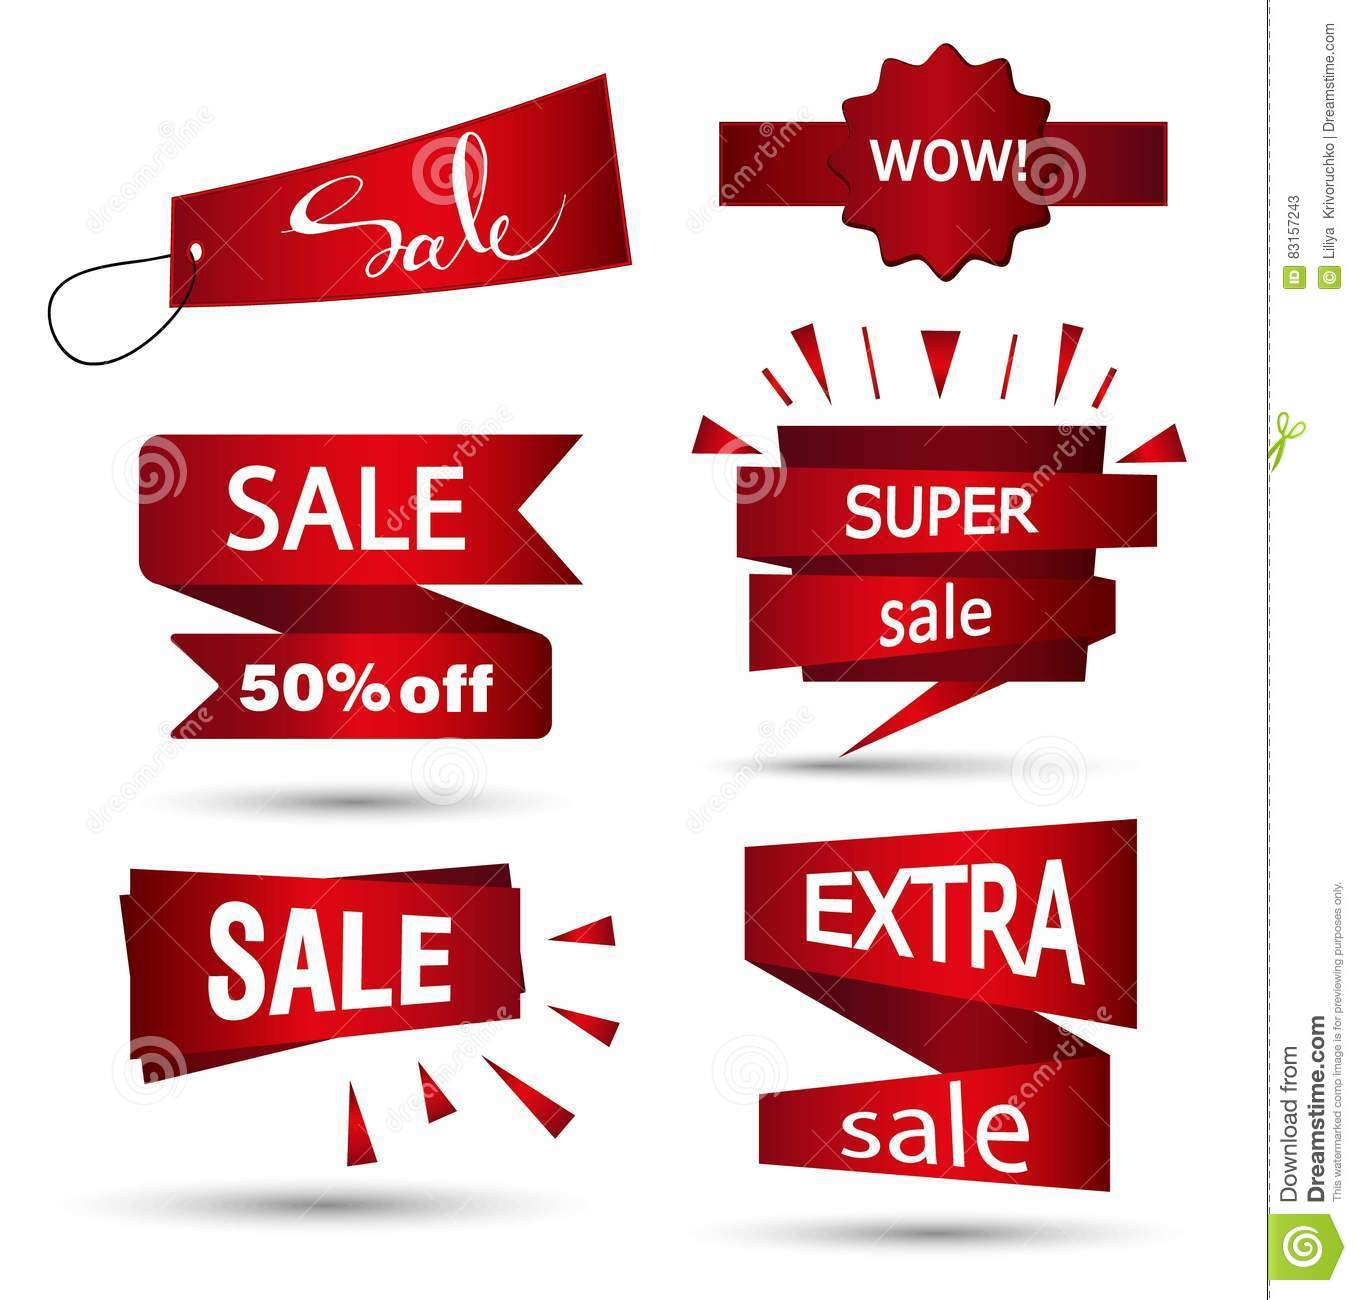 Sale Banner Banners Global Warming Banners